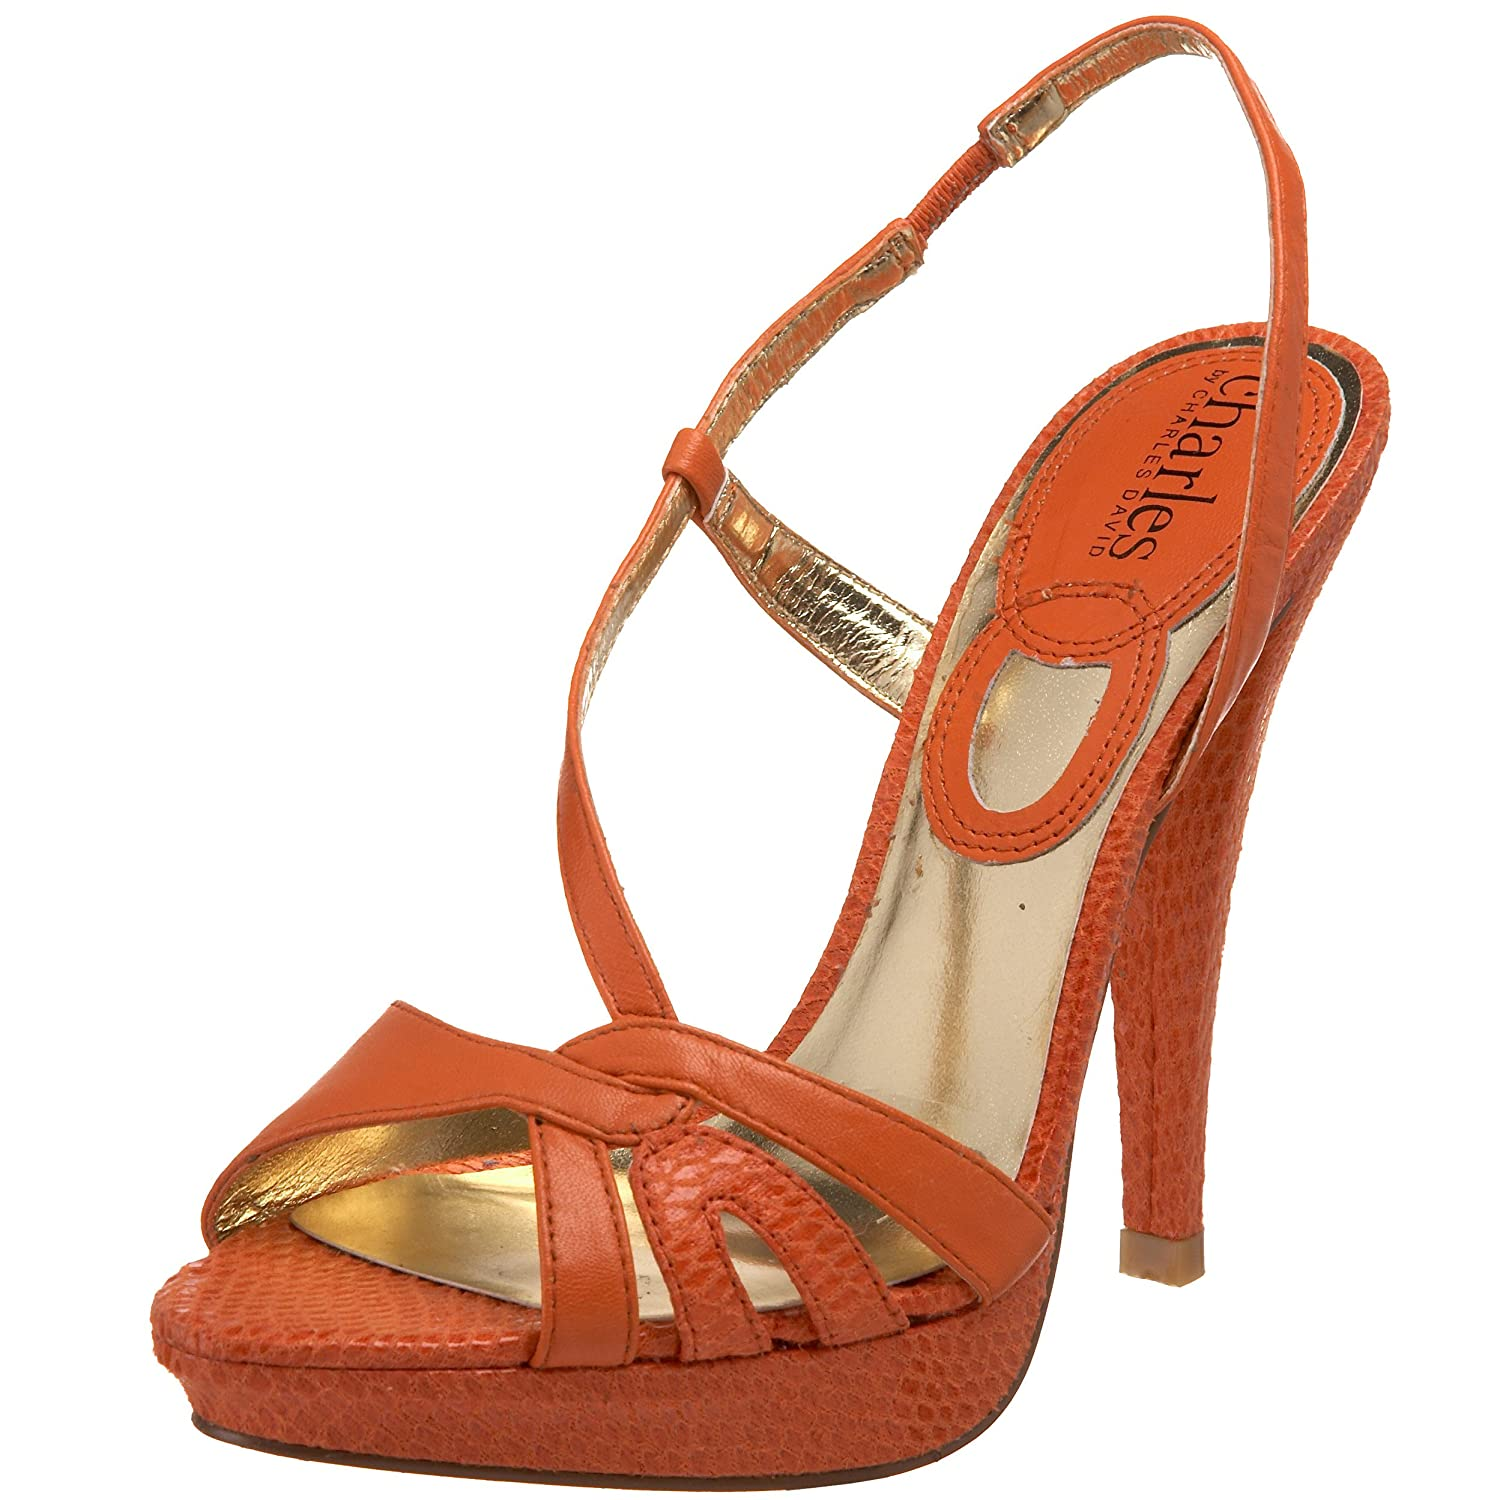 Charles by Charles David -  Anise Platform Sandal